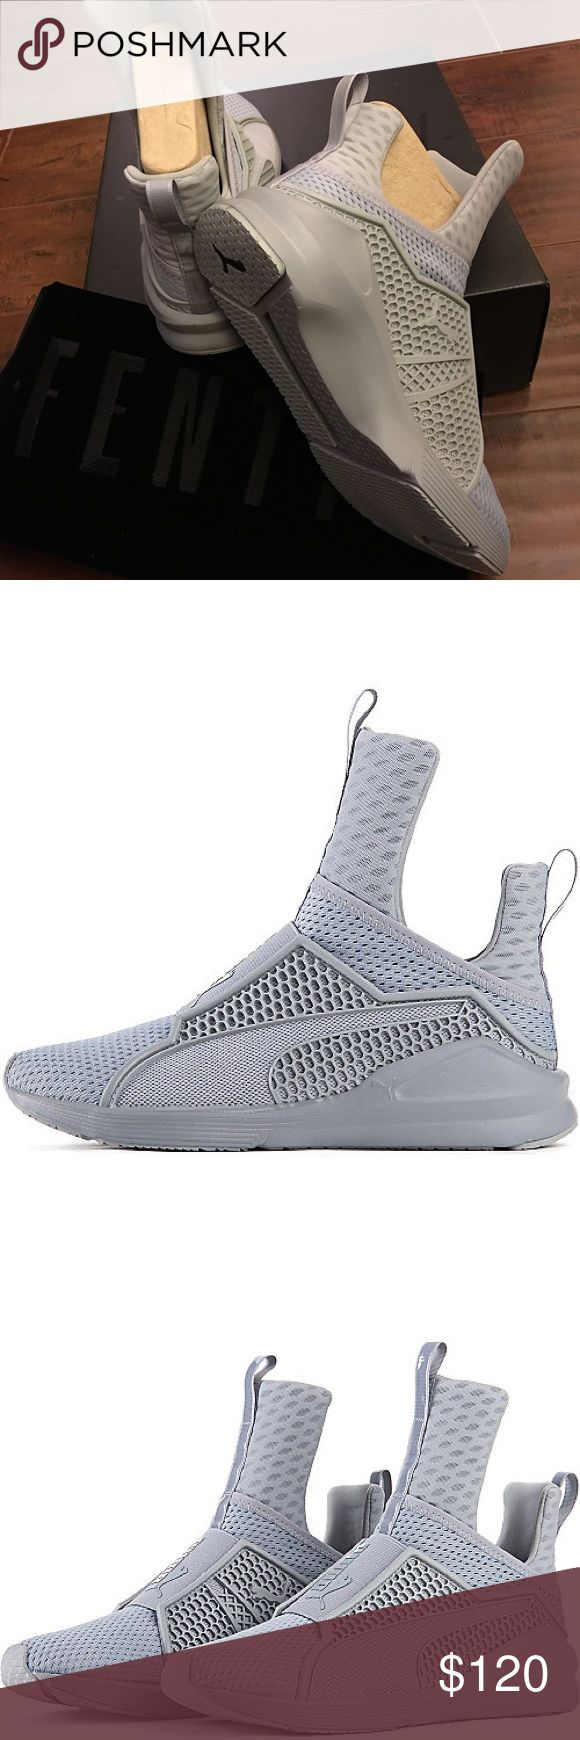 FENTY PUMA TRAINER BY RIHANNA Rihanna PUMA FIERCE  Slip-on style with pull tabs at tongue for easy on and off. Mesh and caging overlays for optimal lockdown, stability and support. Exaggerated heel thickness and medial and lateral sides for greater stability. EVA cushioned insole. Pivot points at heel and toe for greater movement. Synthetic and textile upper/textile lining/synthetic sole. Puma Shoes Athletic Shoes